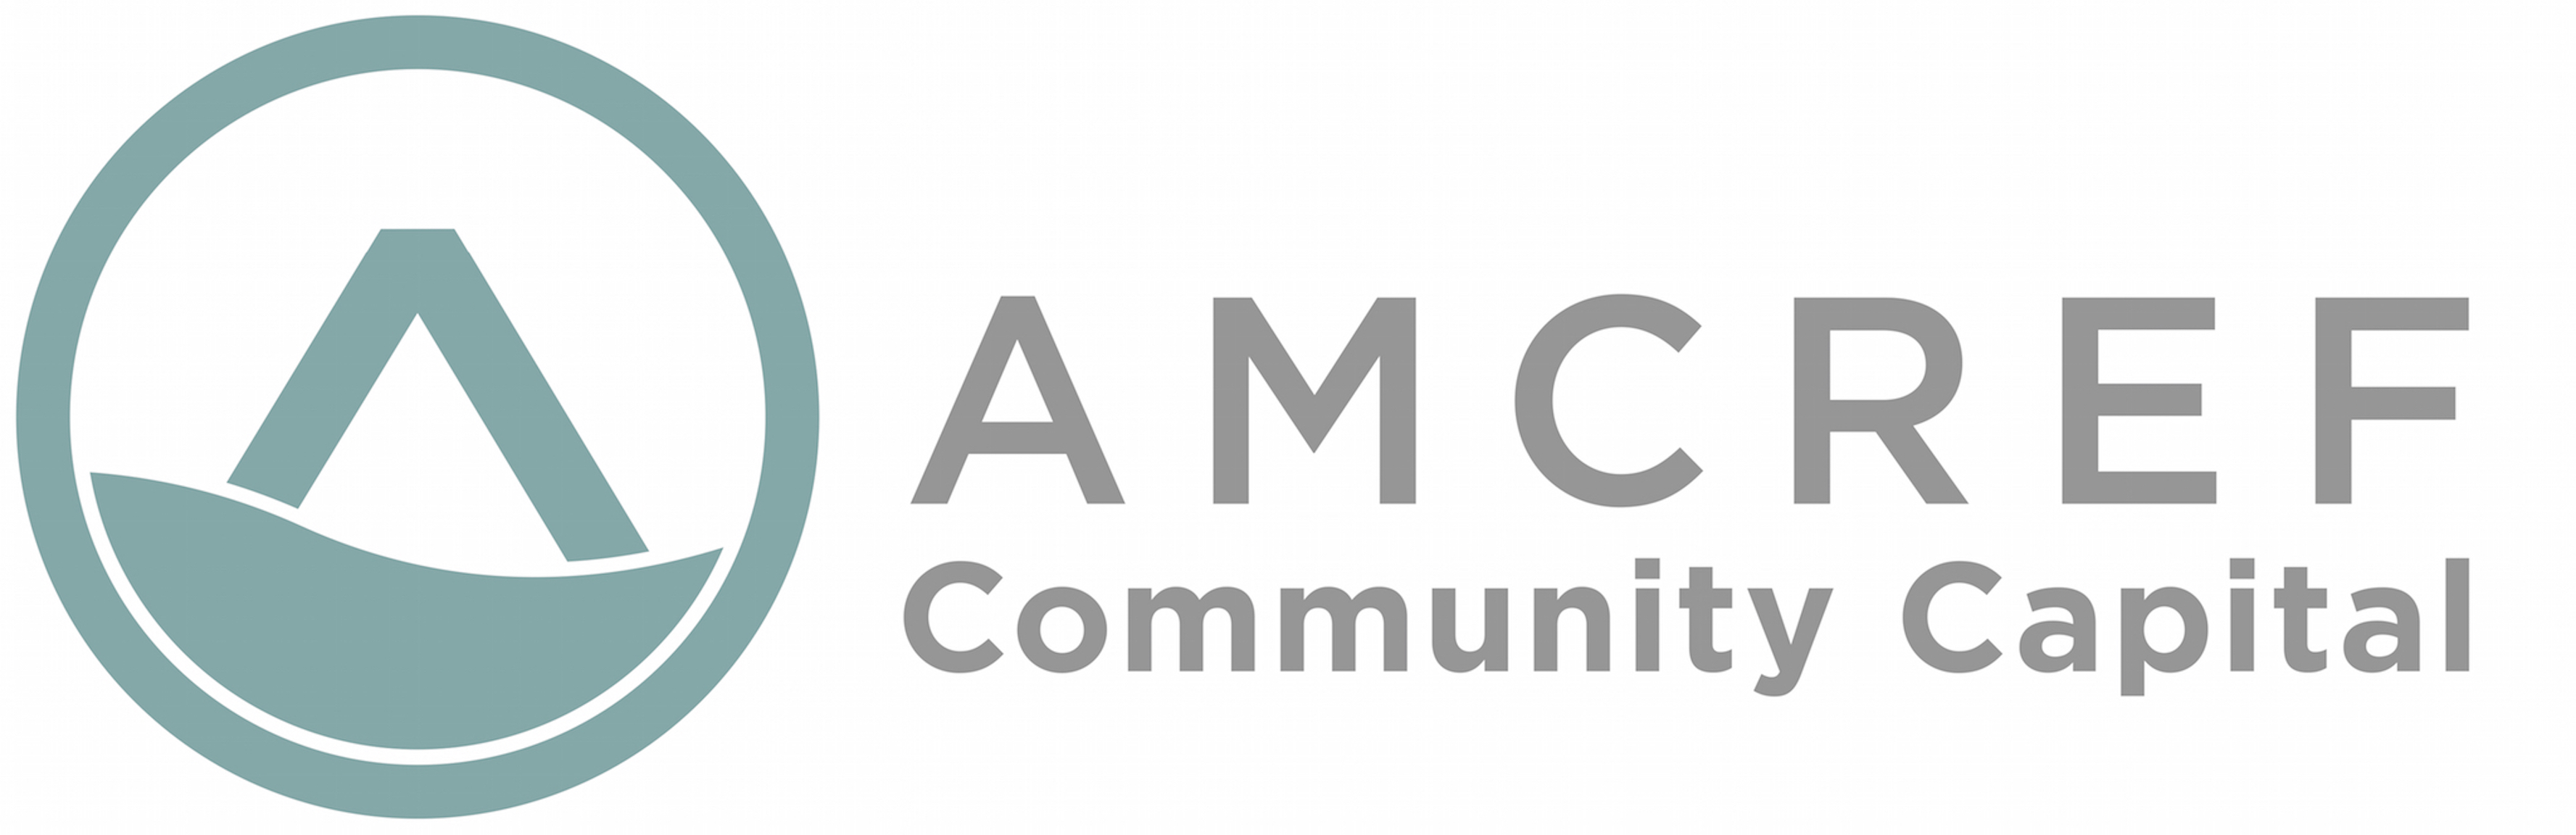 AMCREF Community Capital, LLC